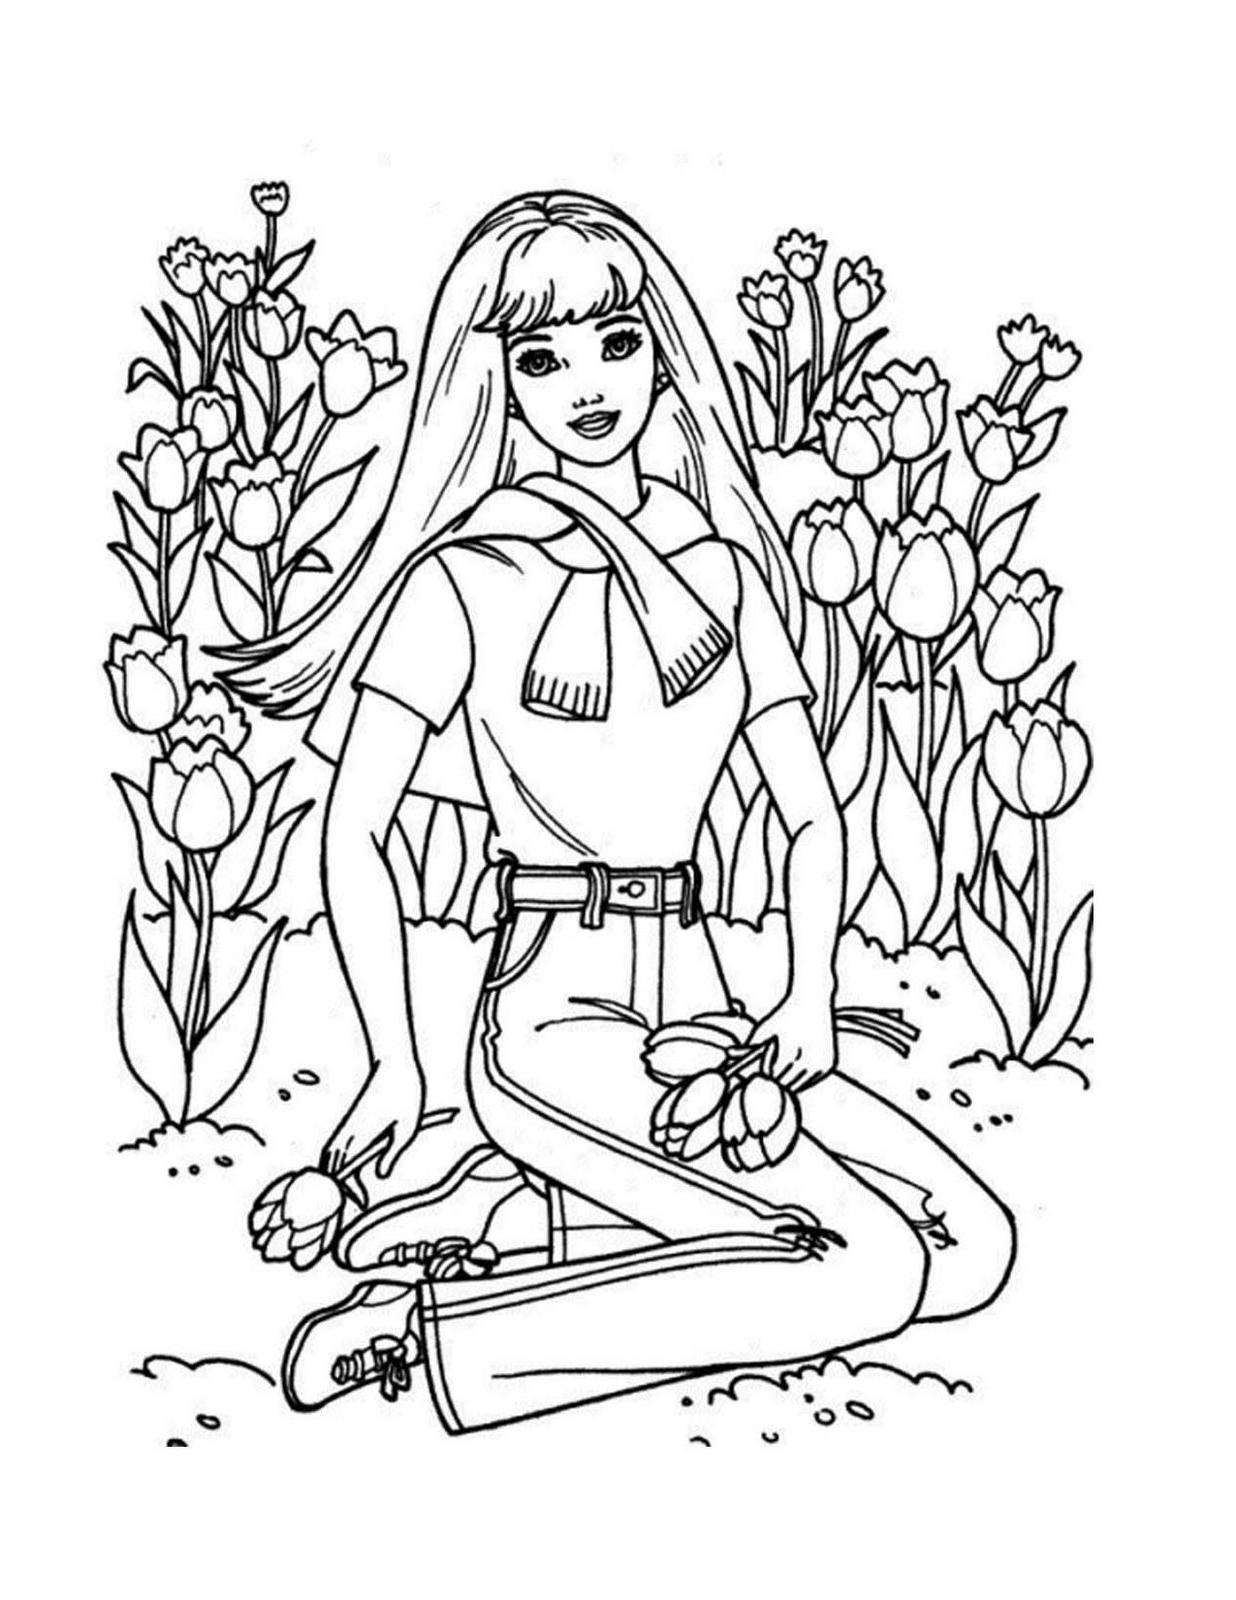 barbie princess coloring book 8 printable barbie princess coloring pages gtgt disney barbie book coloring princess